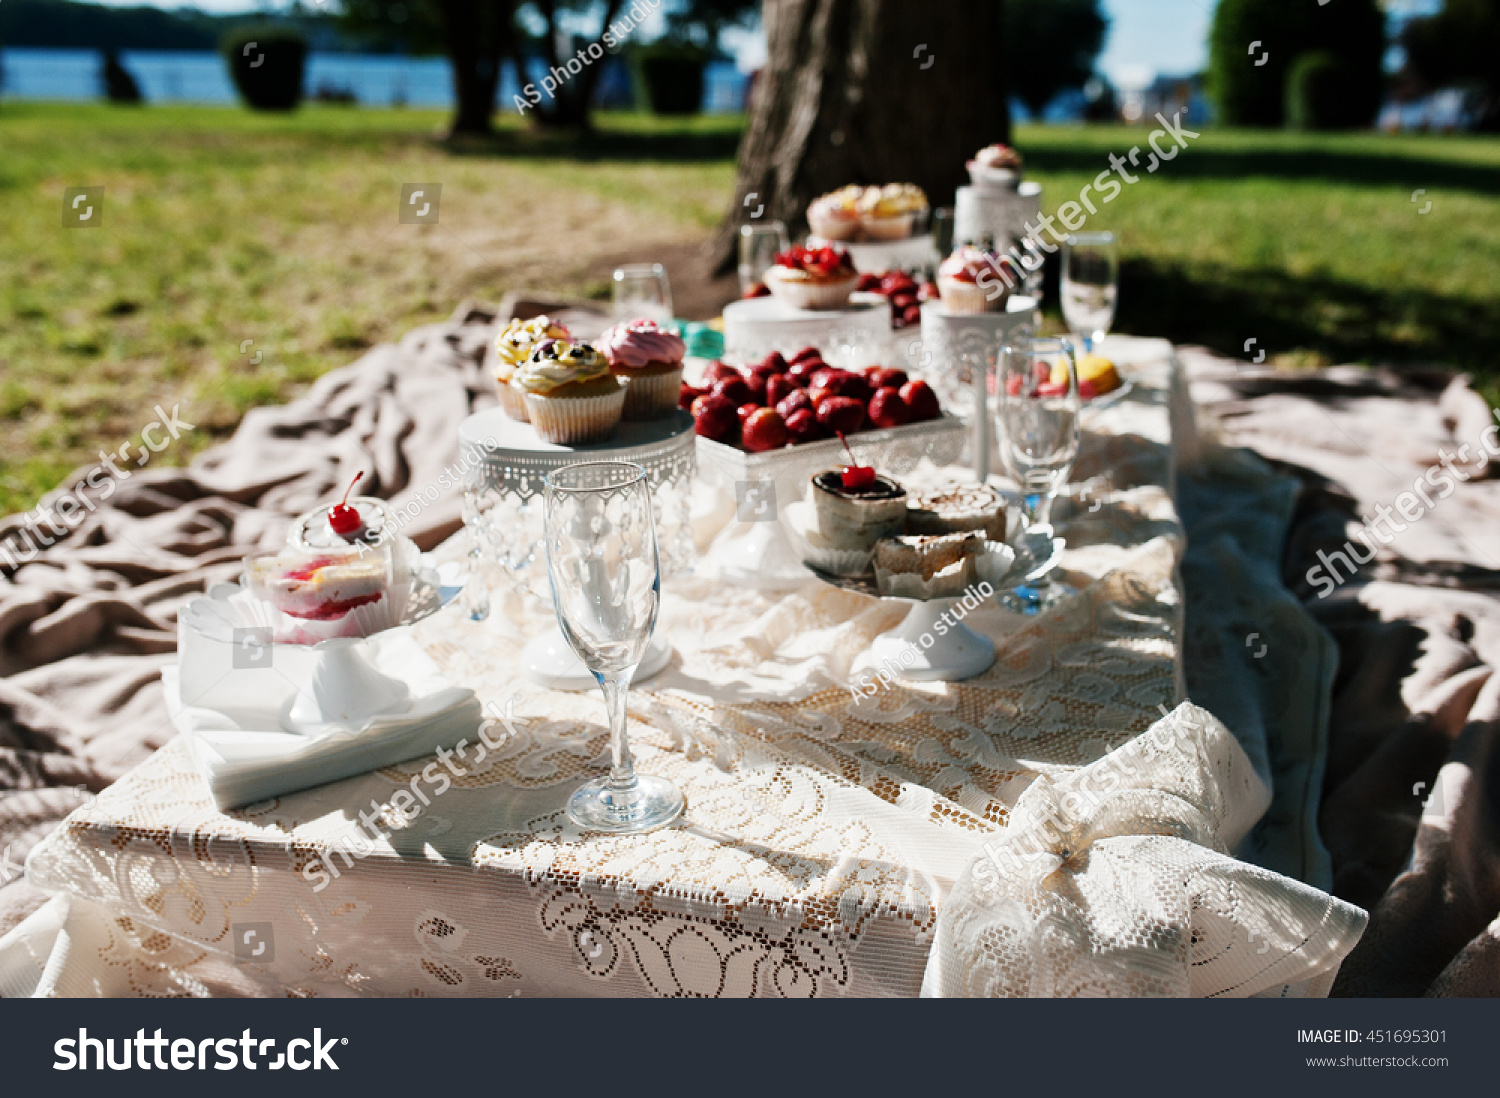 Picnic Decor Picnic Table Decor On Grass Macaroon Stock Photo Edit Now